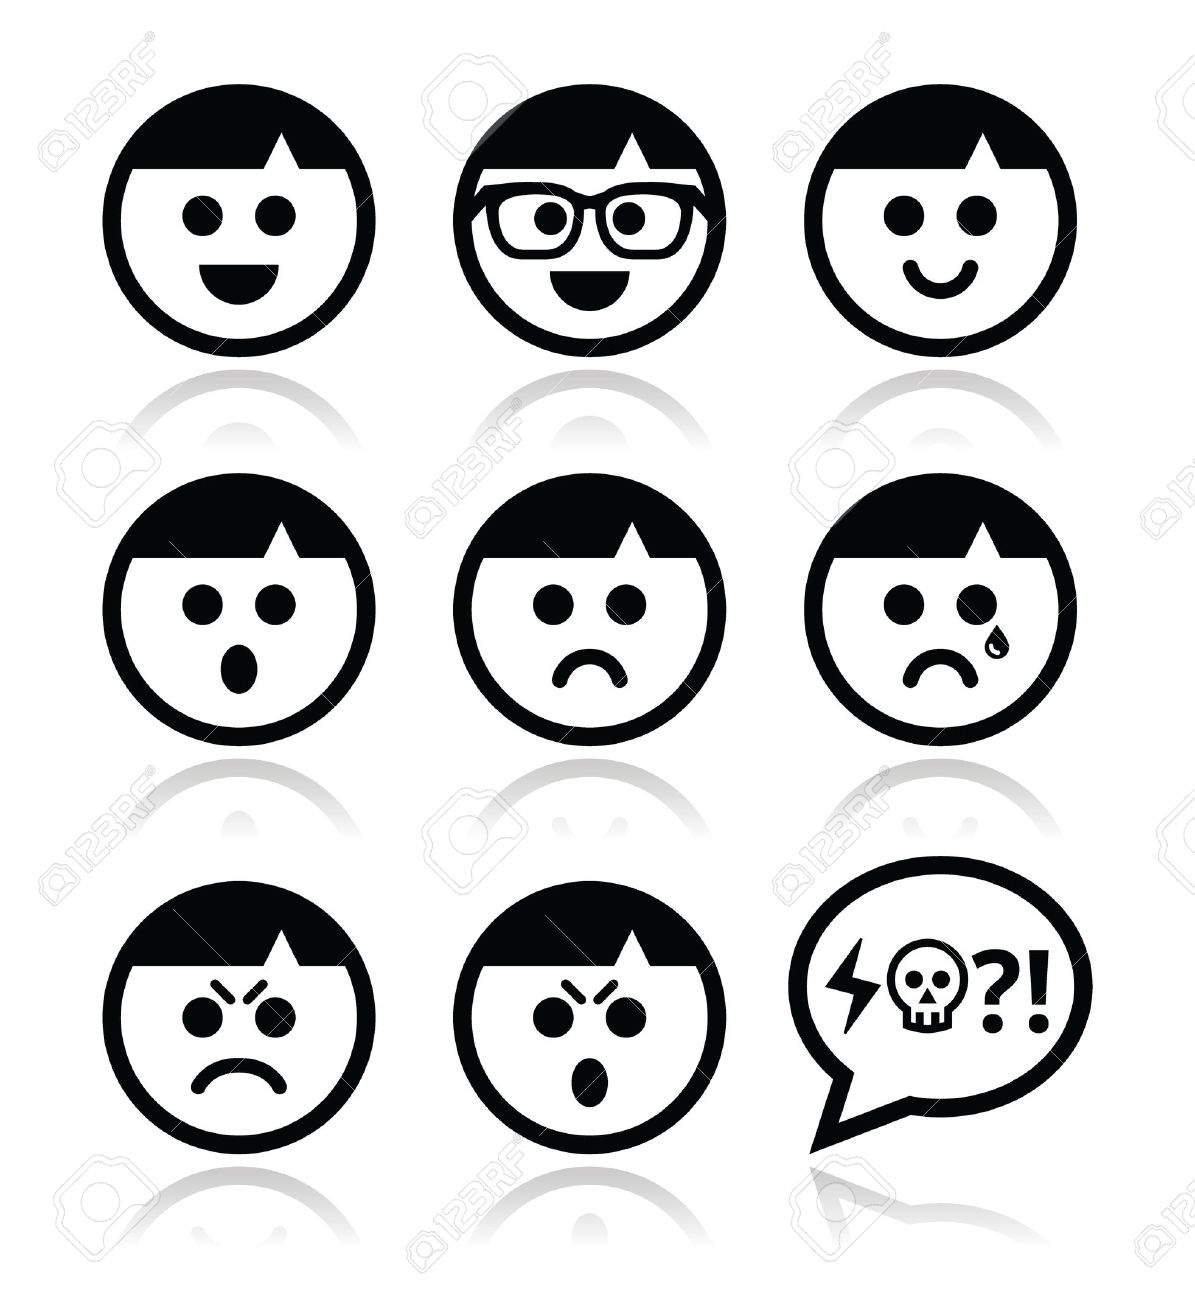 1195x1300 Smiley Faces, Avatar Vector Icons Set Royalty Free Cliparts